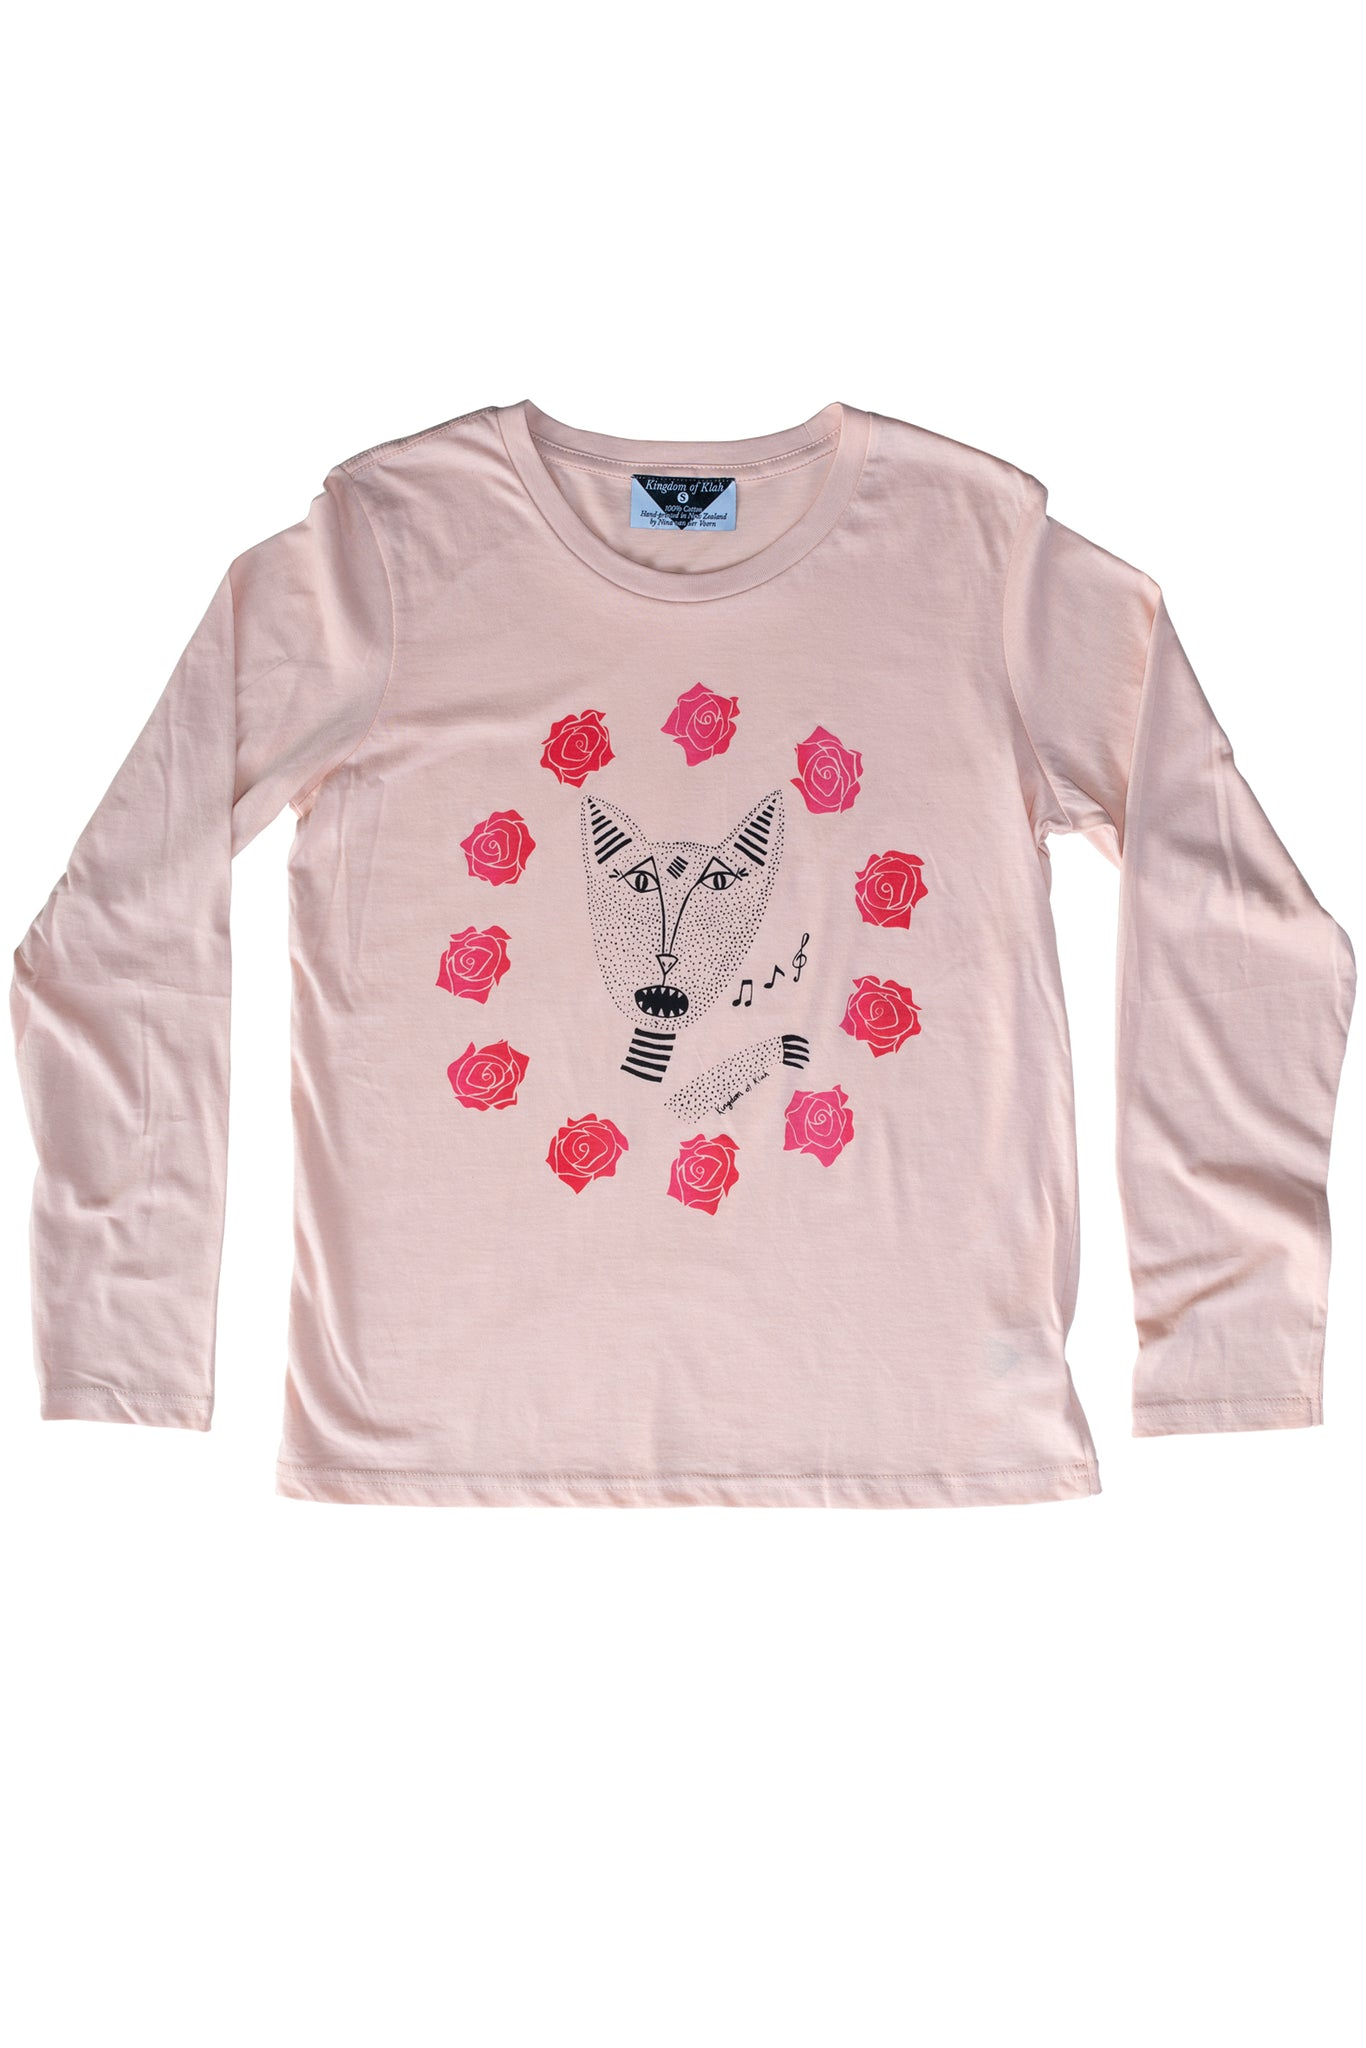 Native Singing Cats Women's Longsleeve, Peachy Pink